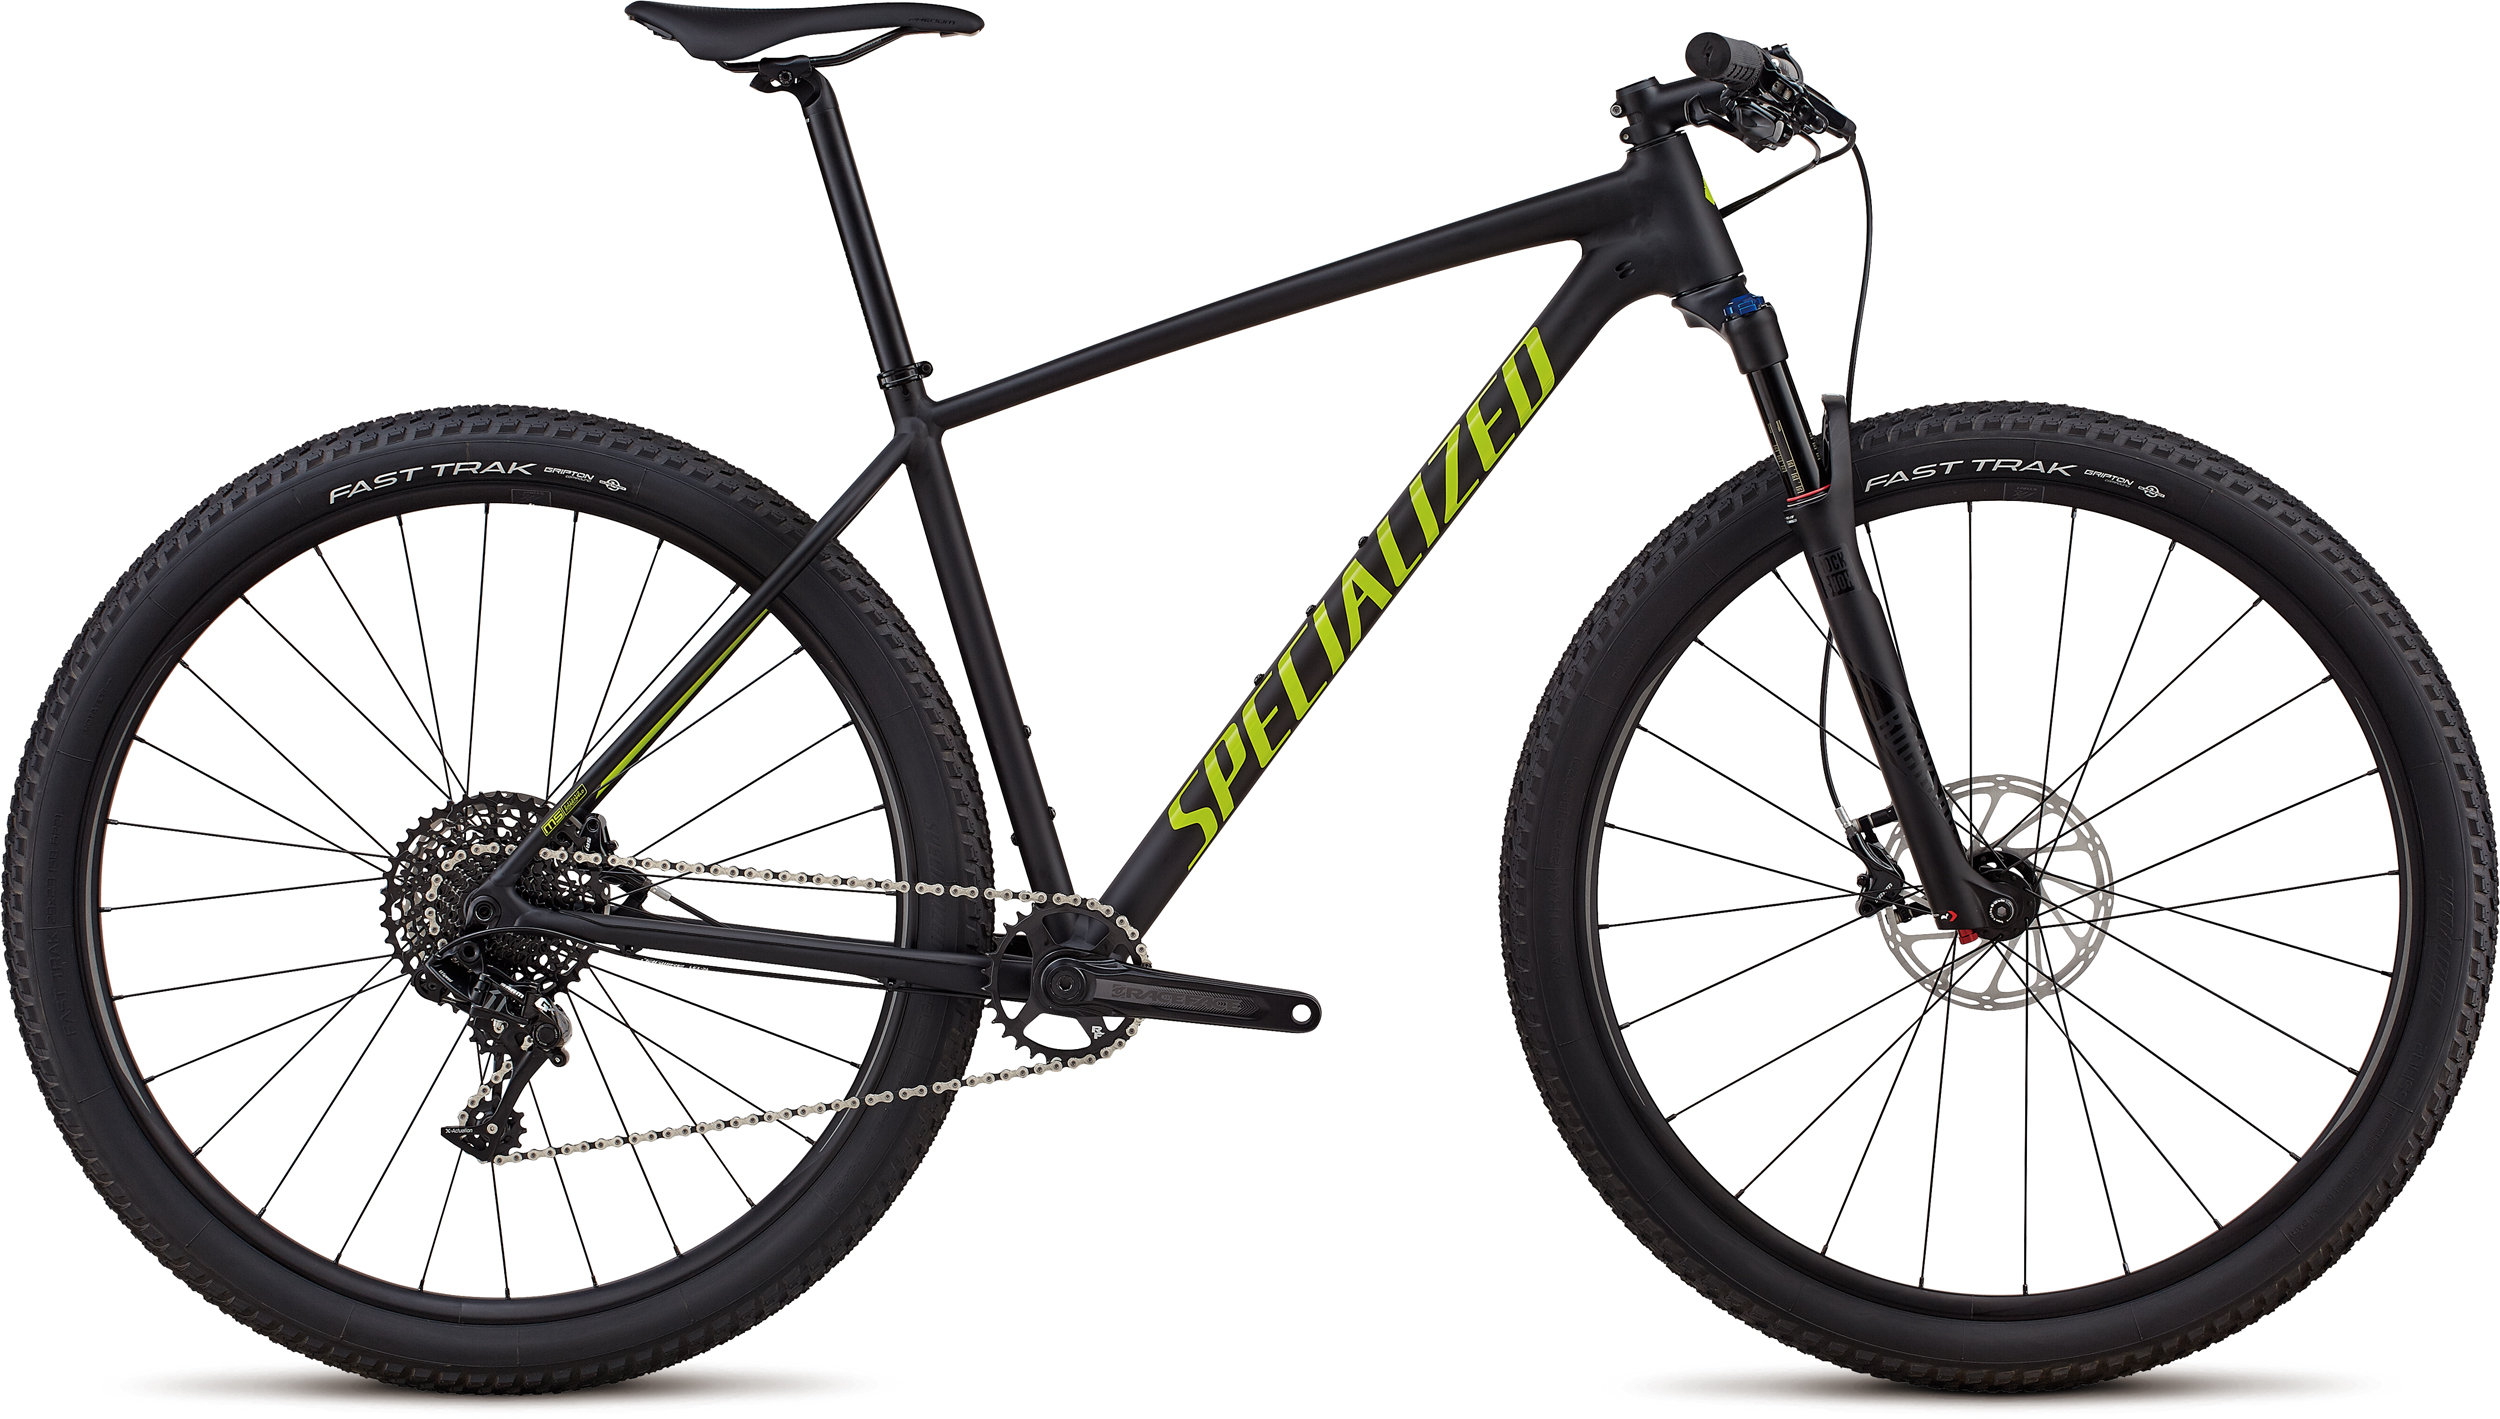 Specialized Men´s Chisel Expert - 1x Satin Gloss Black / Hyper Green S - Bike Maniac